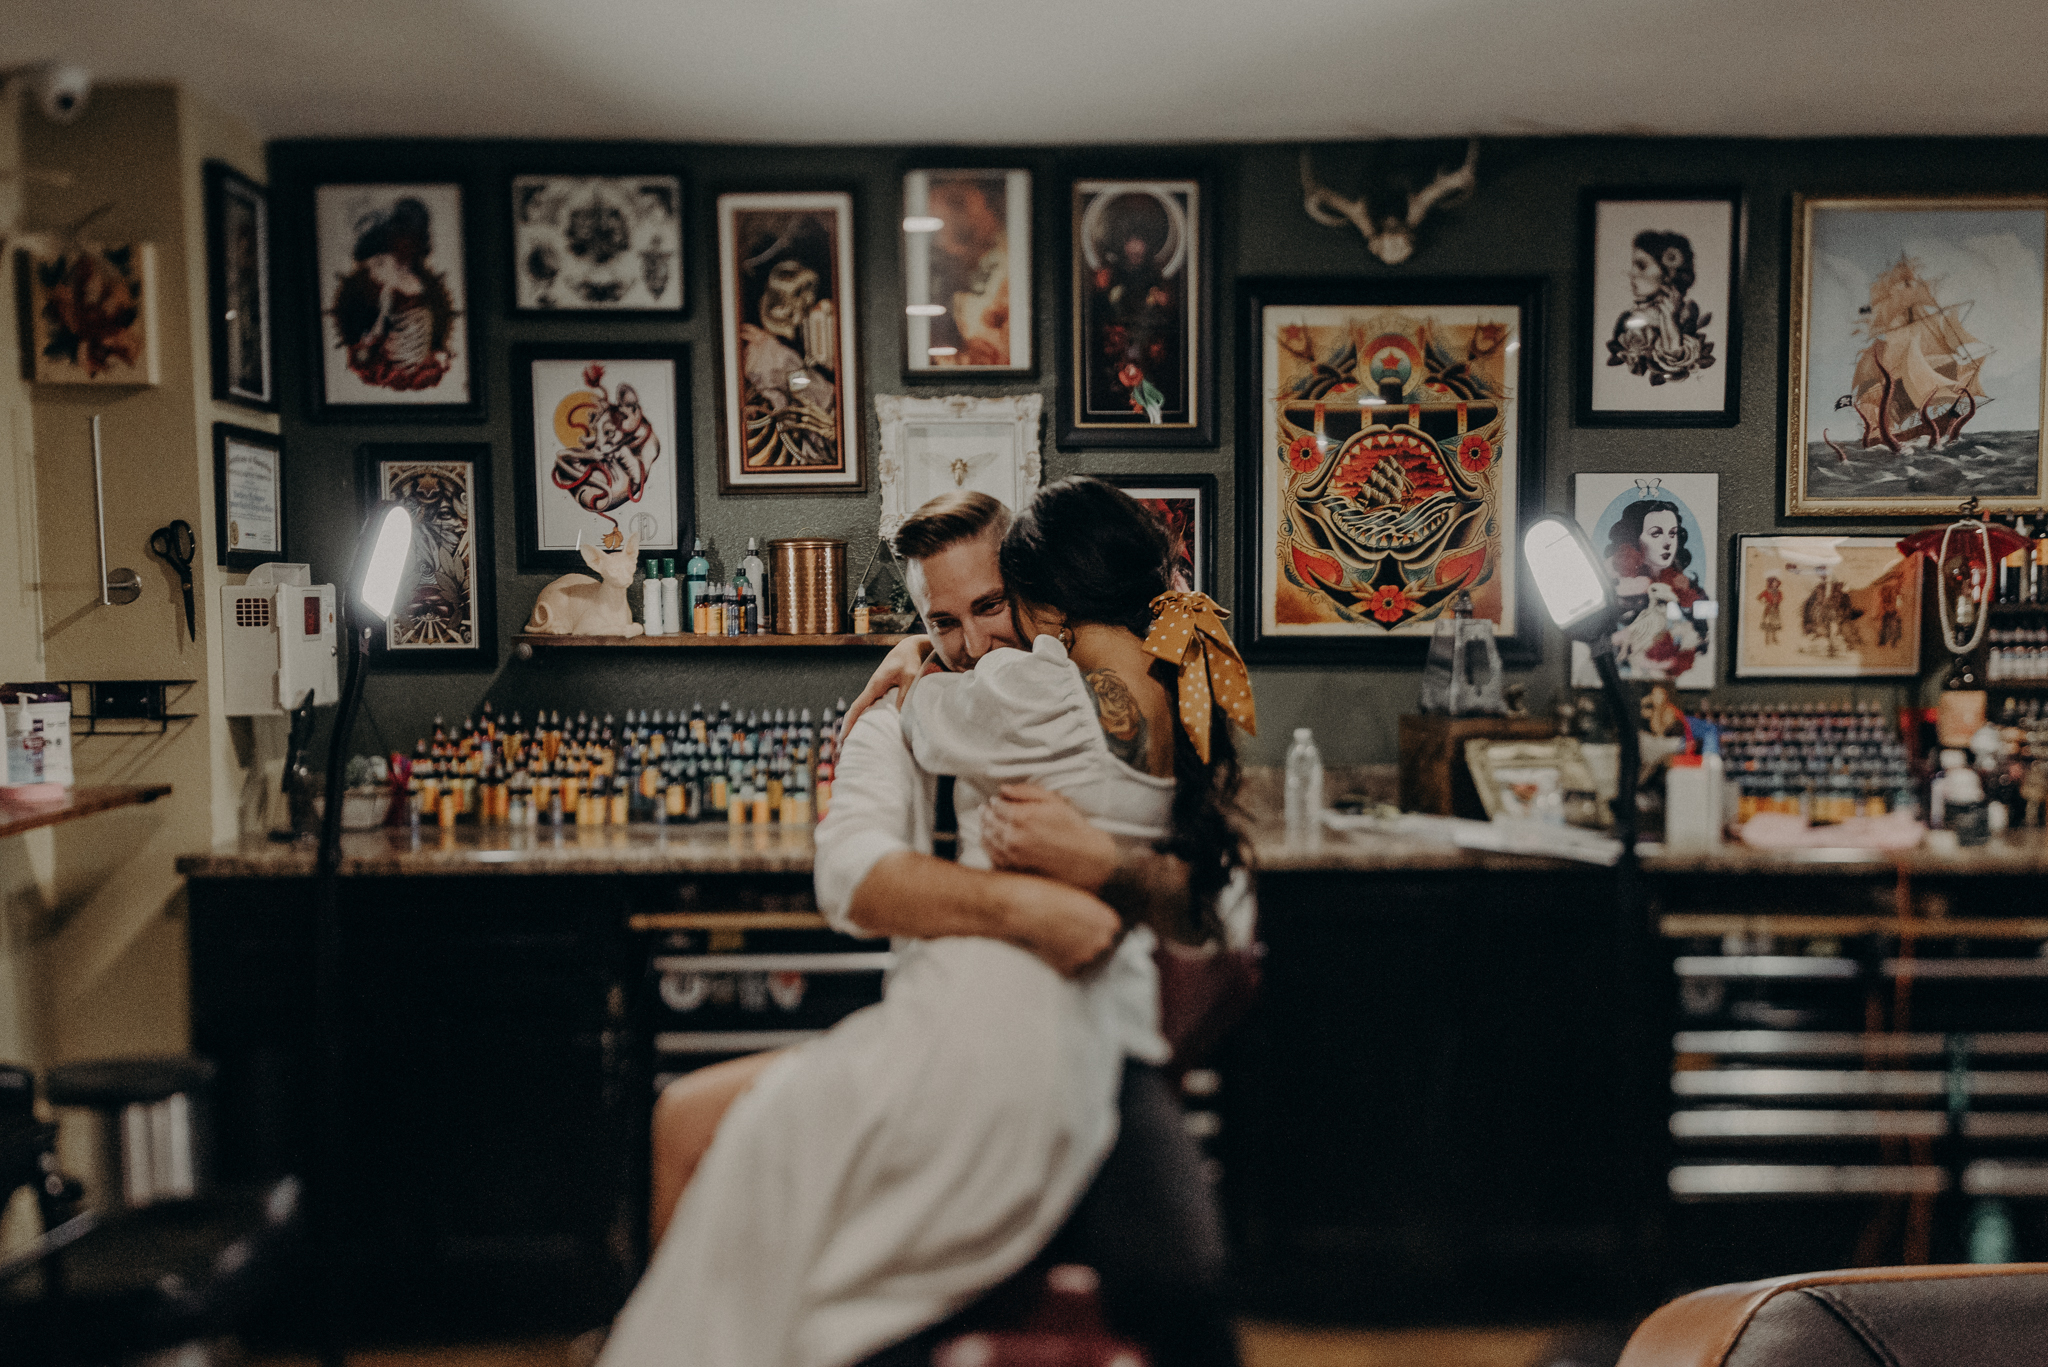 Wedding Photographer in LA - Los Angeles Wedding Photos - Tattoo Shop Engagement Session - IsaiahAndTaylor.com-017.jpg